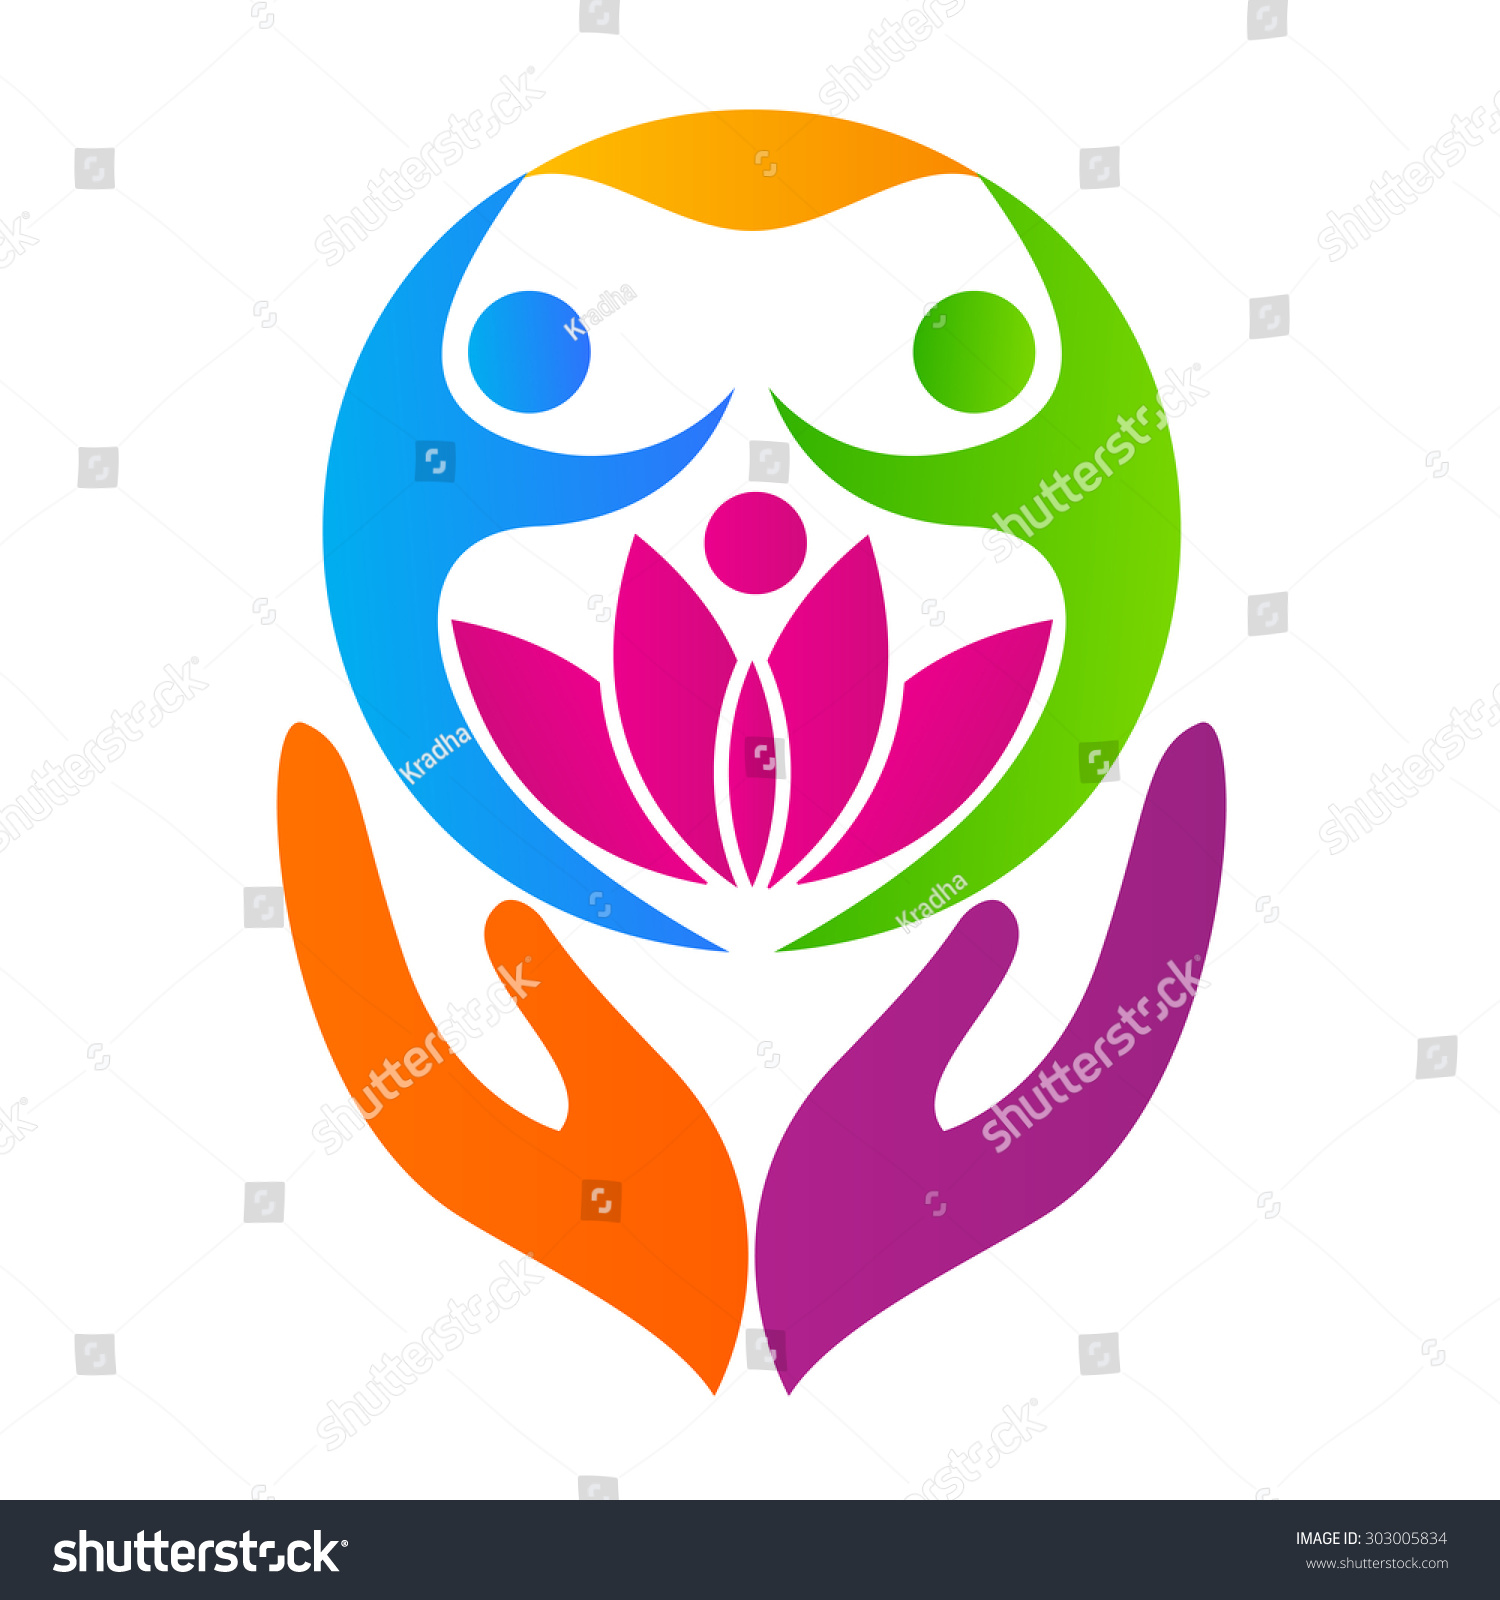 Purpose people care design used trust stock vector 303005834 the purpose of the people care design used for trust and orphanage biocorpaavc Choice Image